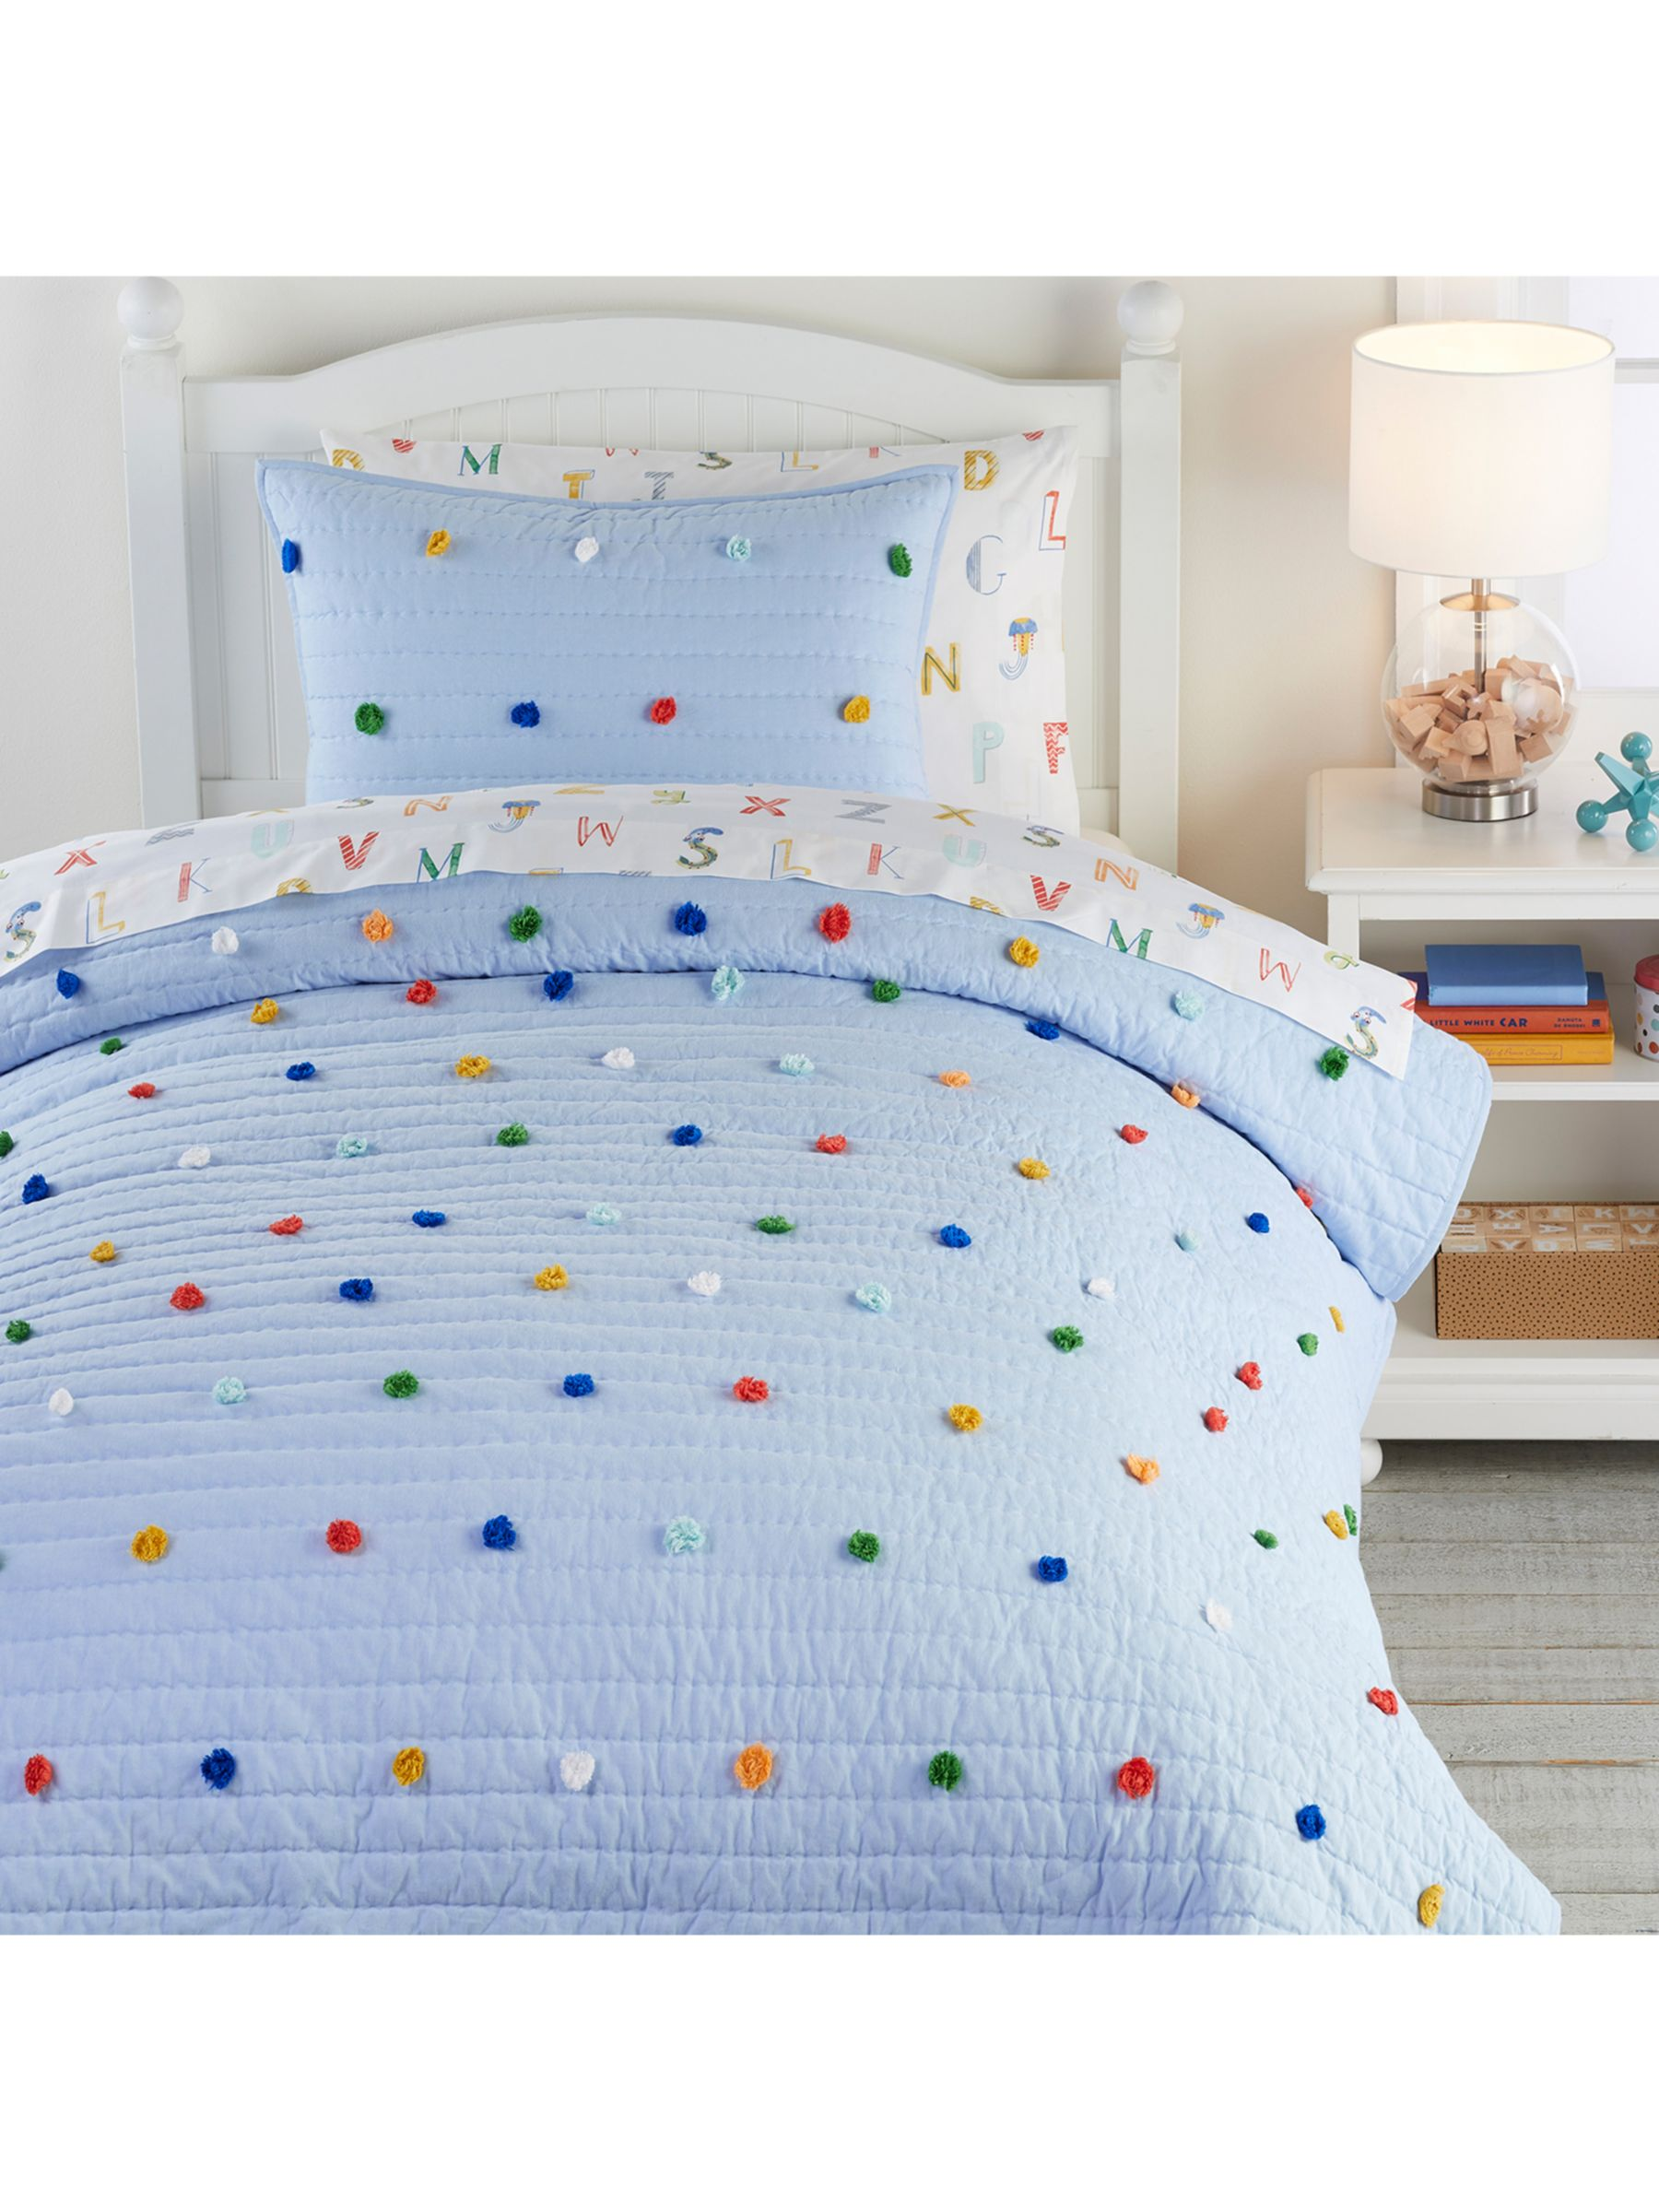 Pottery Barn Kids Dylan Pom Pom Quilted Bedspread Blue Multi At John Lewis Partners